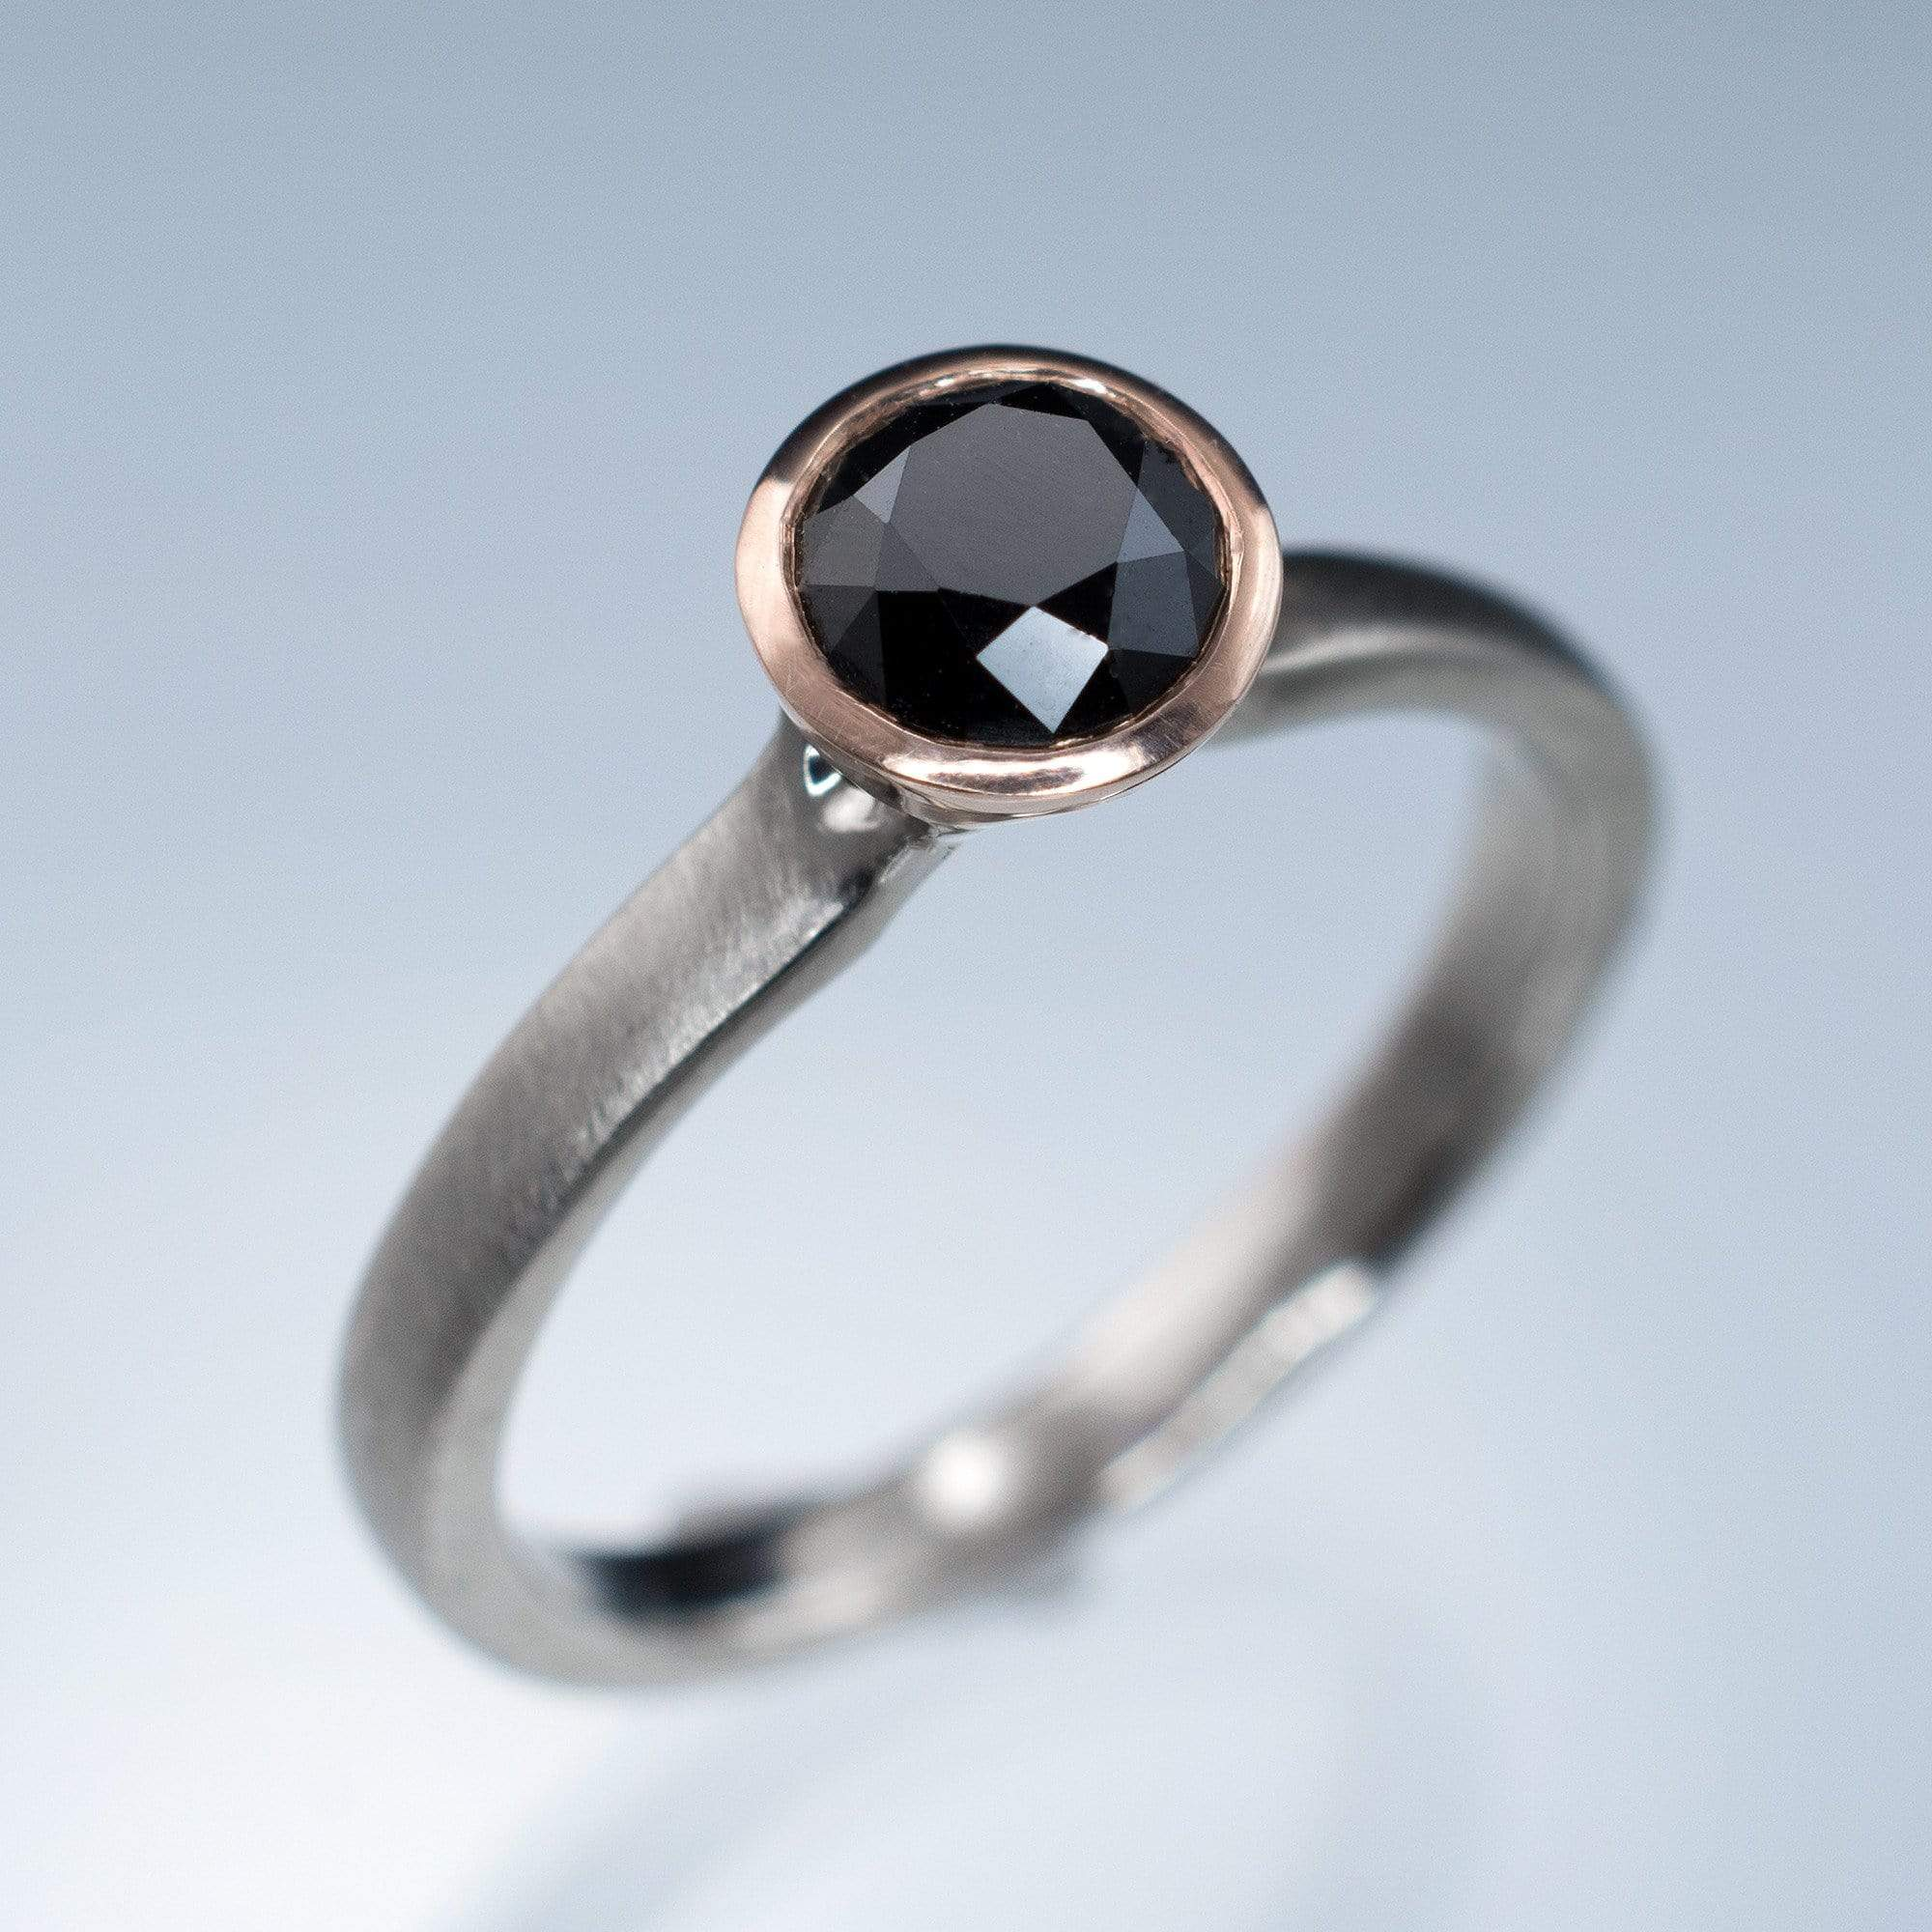 Mixed Metal Black Diamond Bezel Engagement Ring - by Nodeform